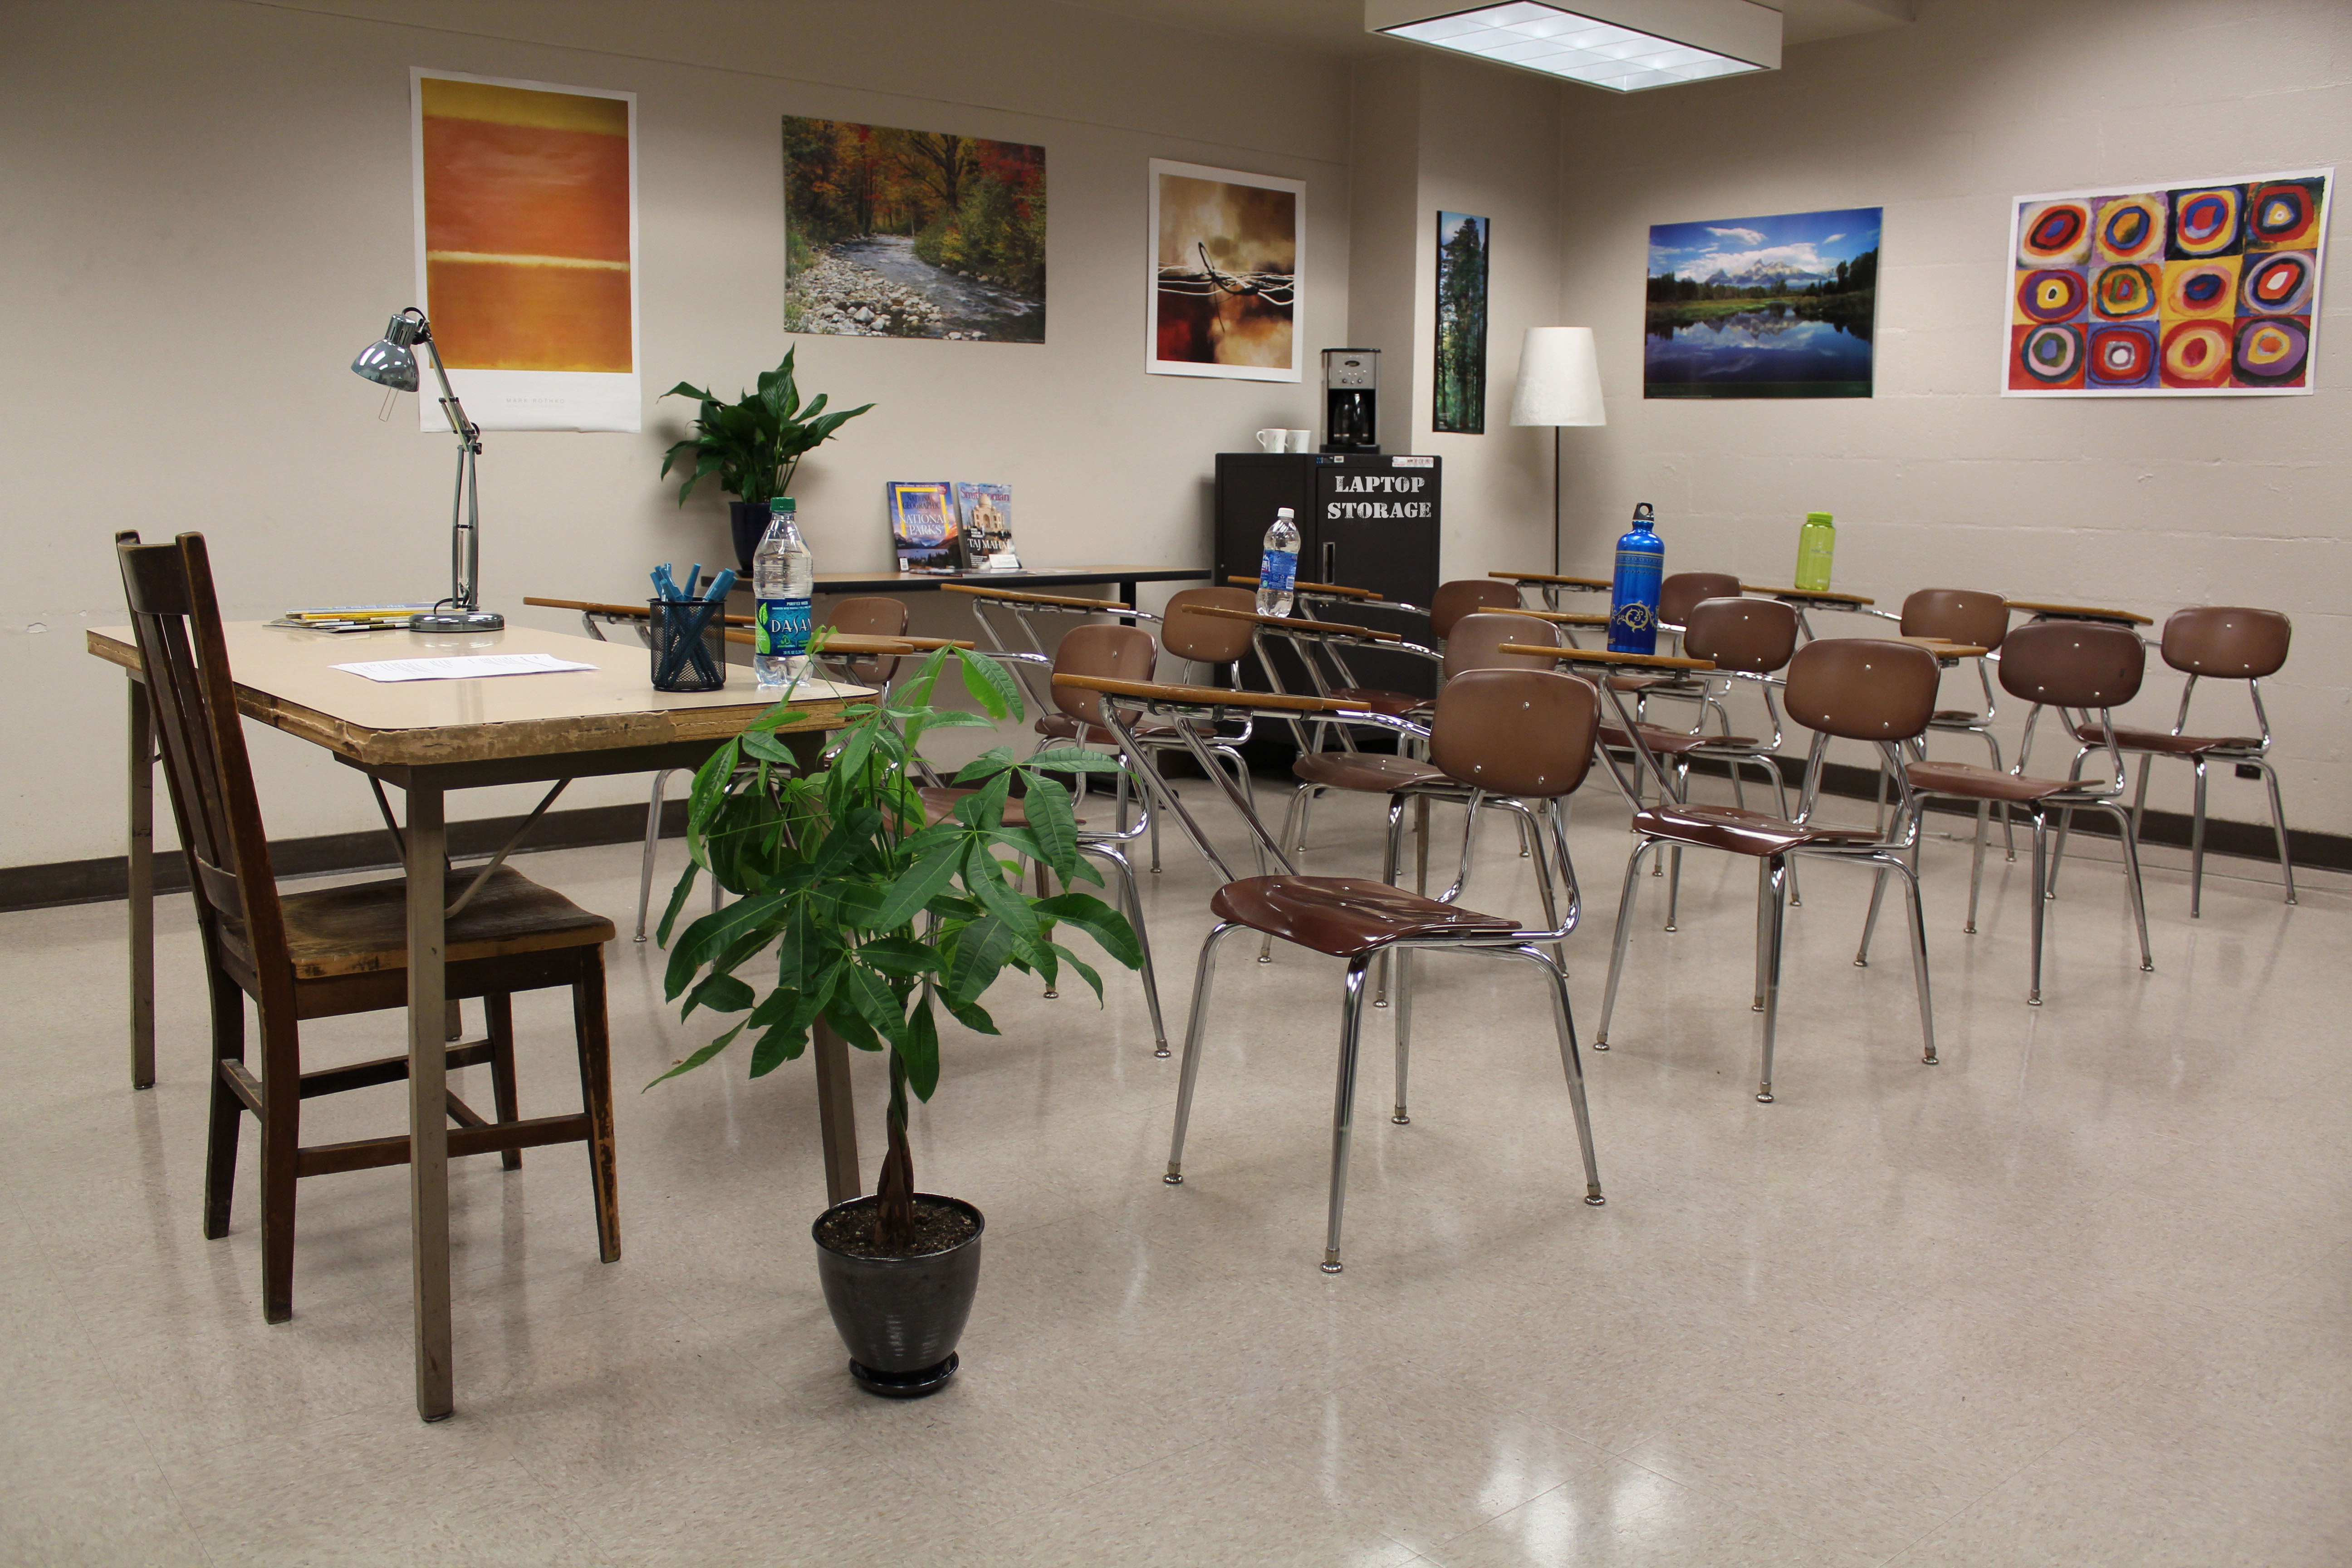 Modern middle school classroom - A Non Stereotypical Computer Science Classroom Decorated With Plants And Nature Posters Credit University Of Washington